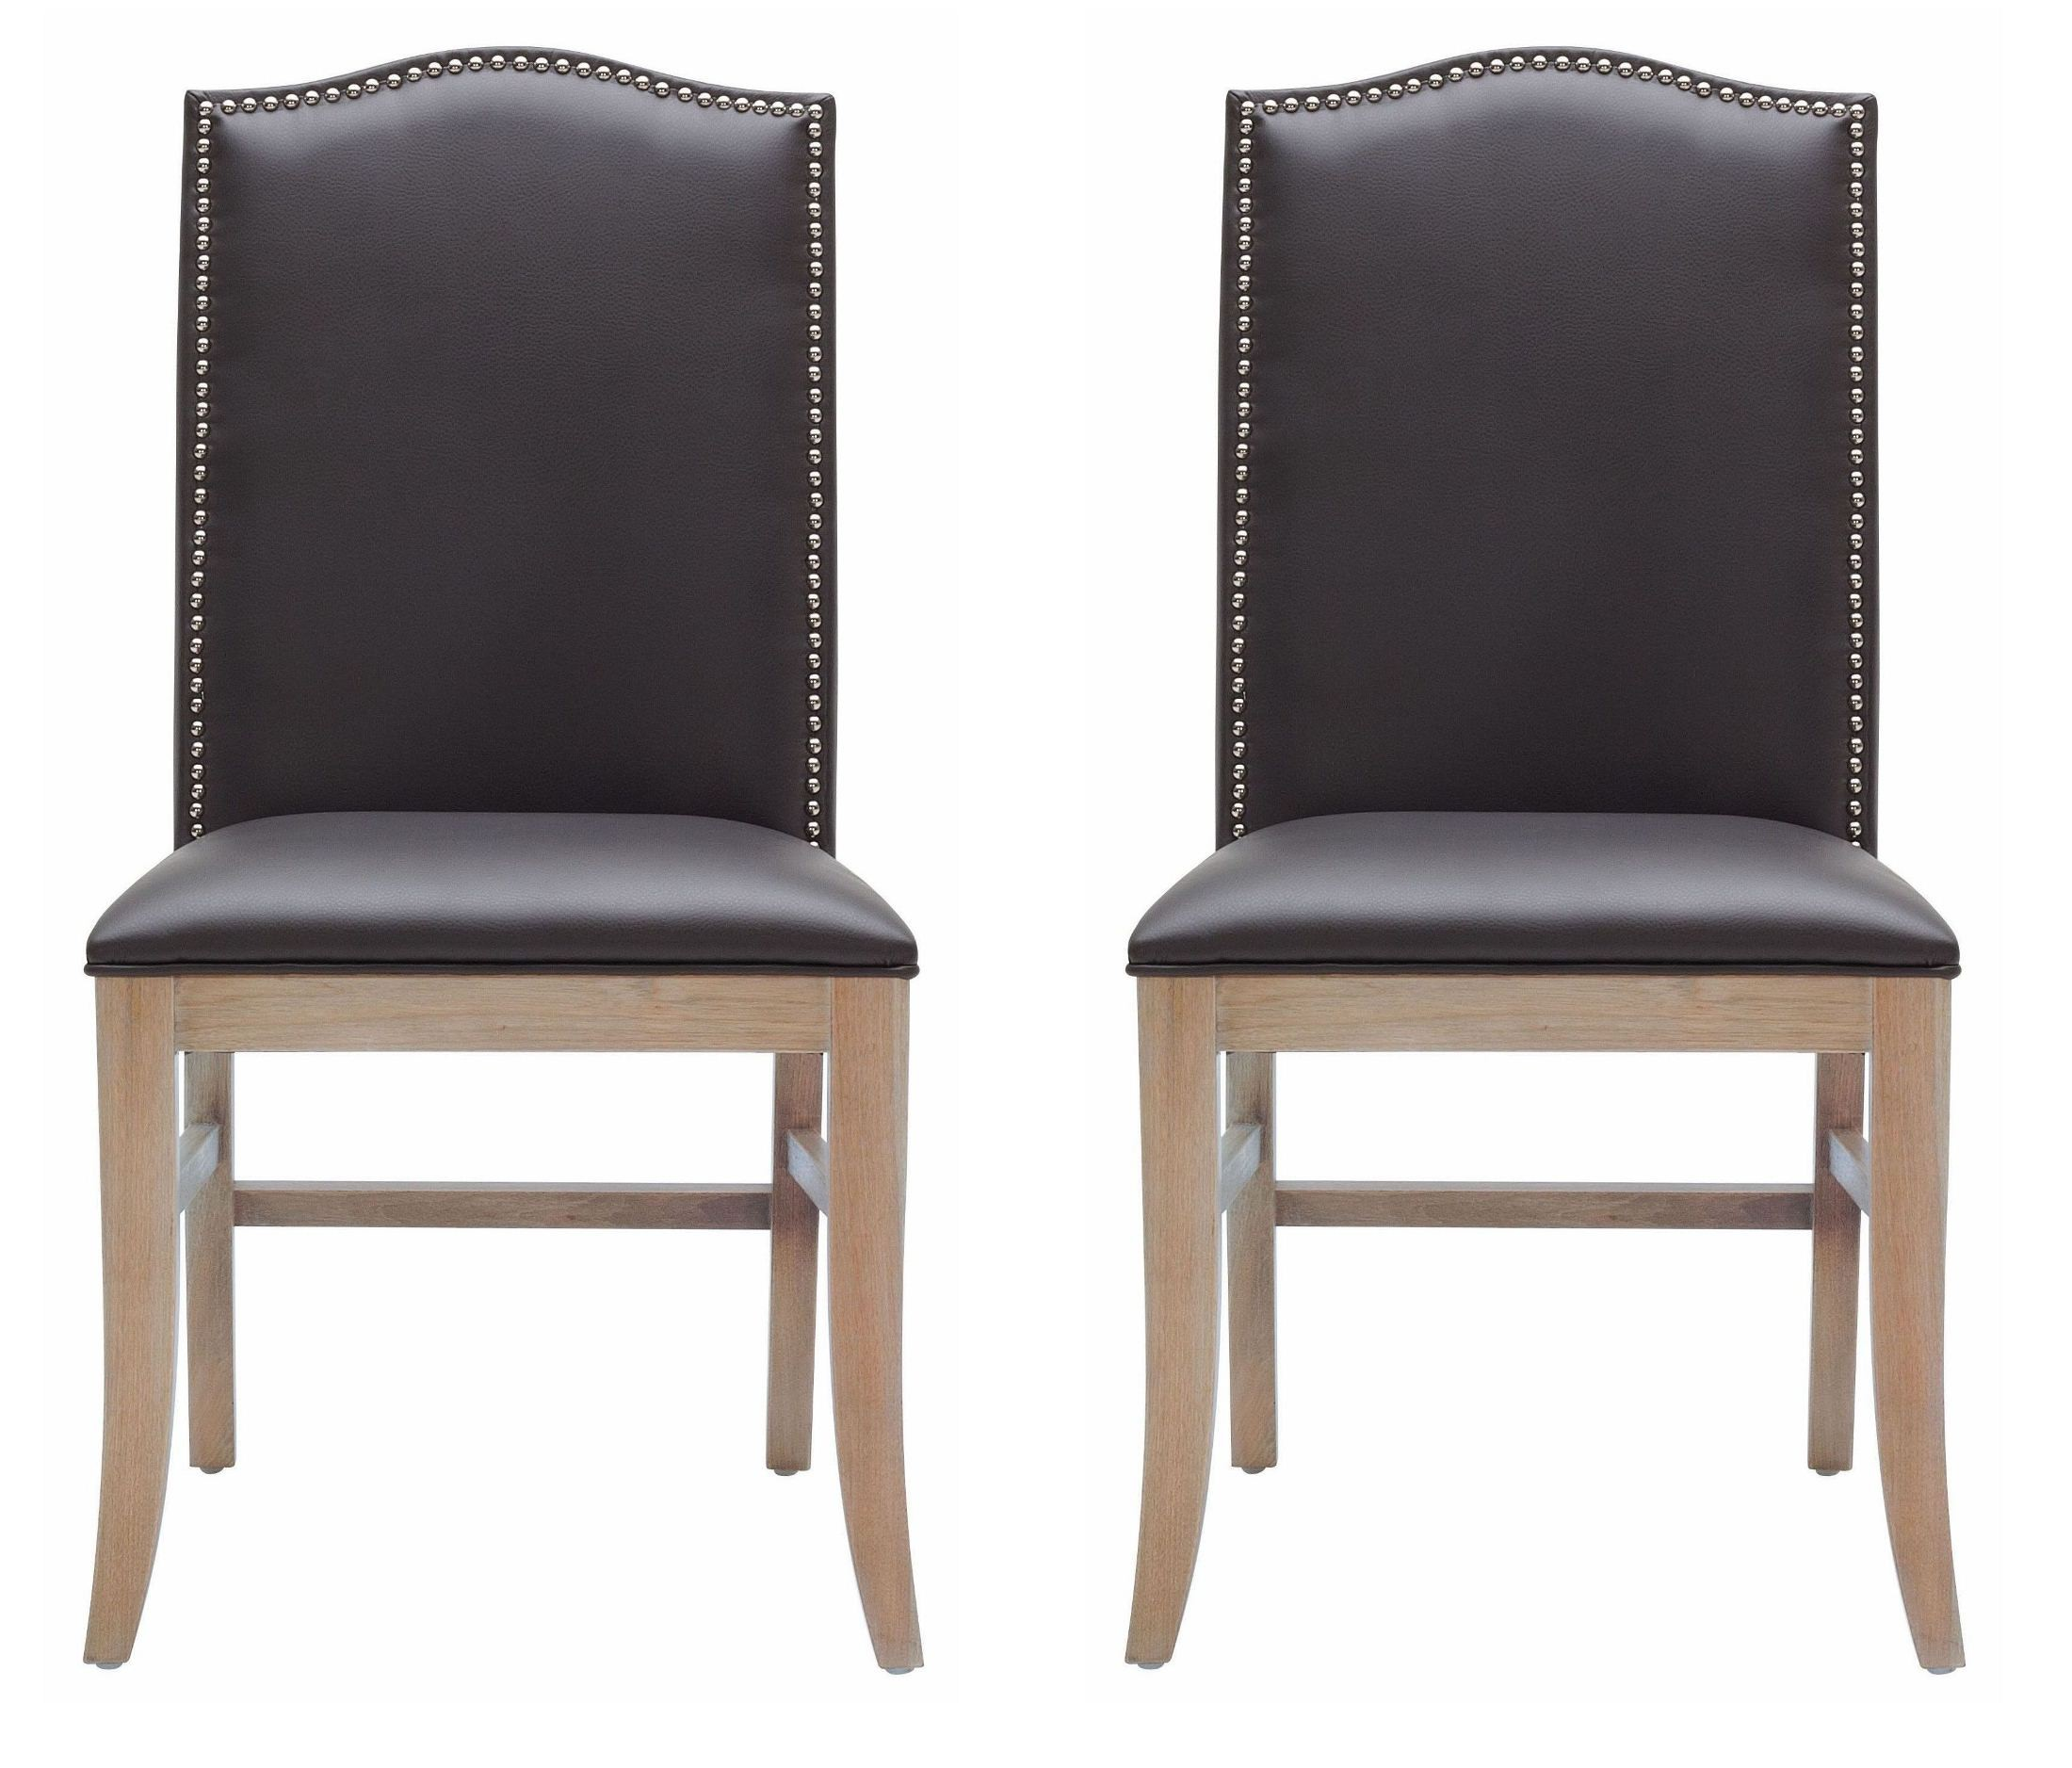 maison gray leather dining chair set of 2 from sunpan 18608 rl coleman furniture. Black Bedroom Furniture Sets. Home Design Ideas